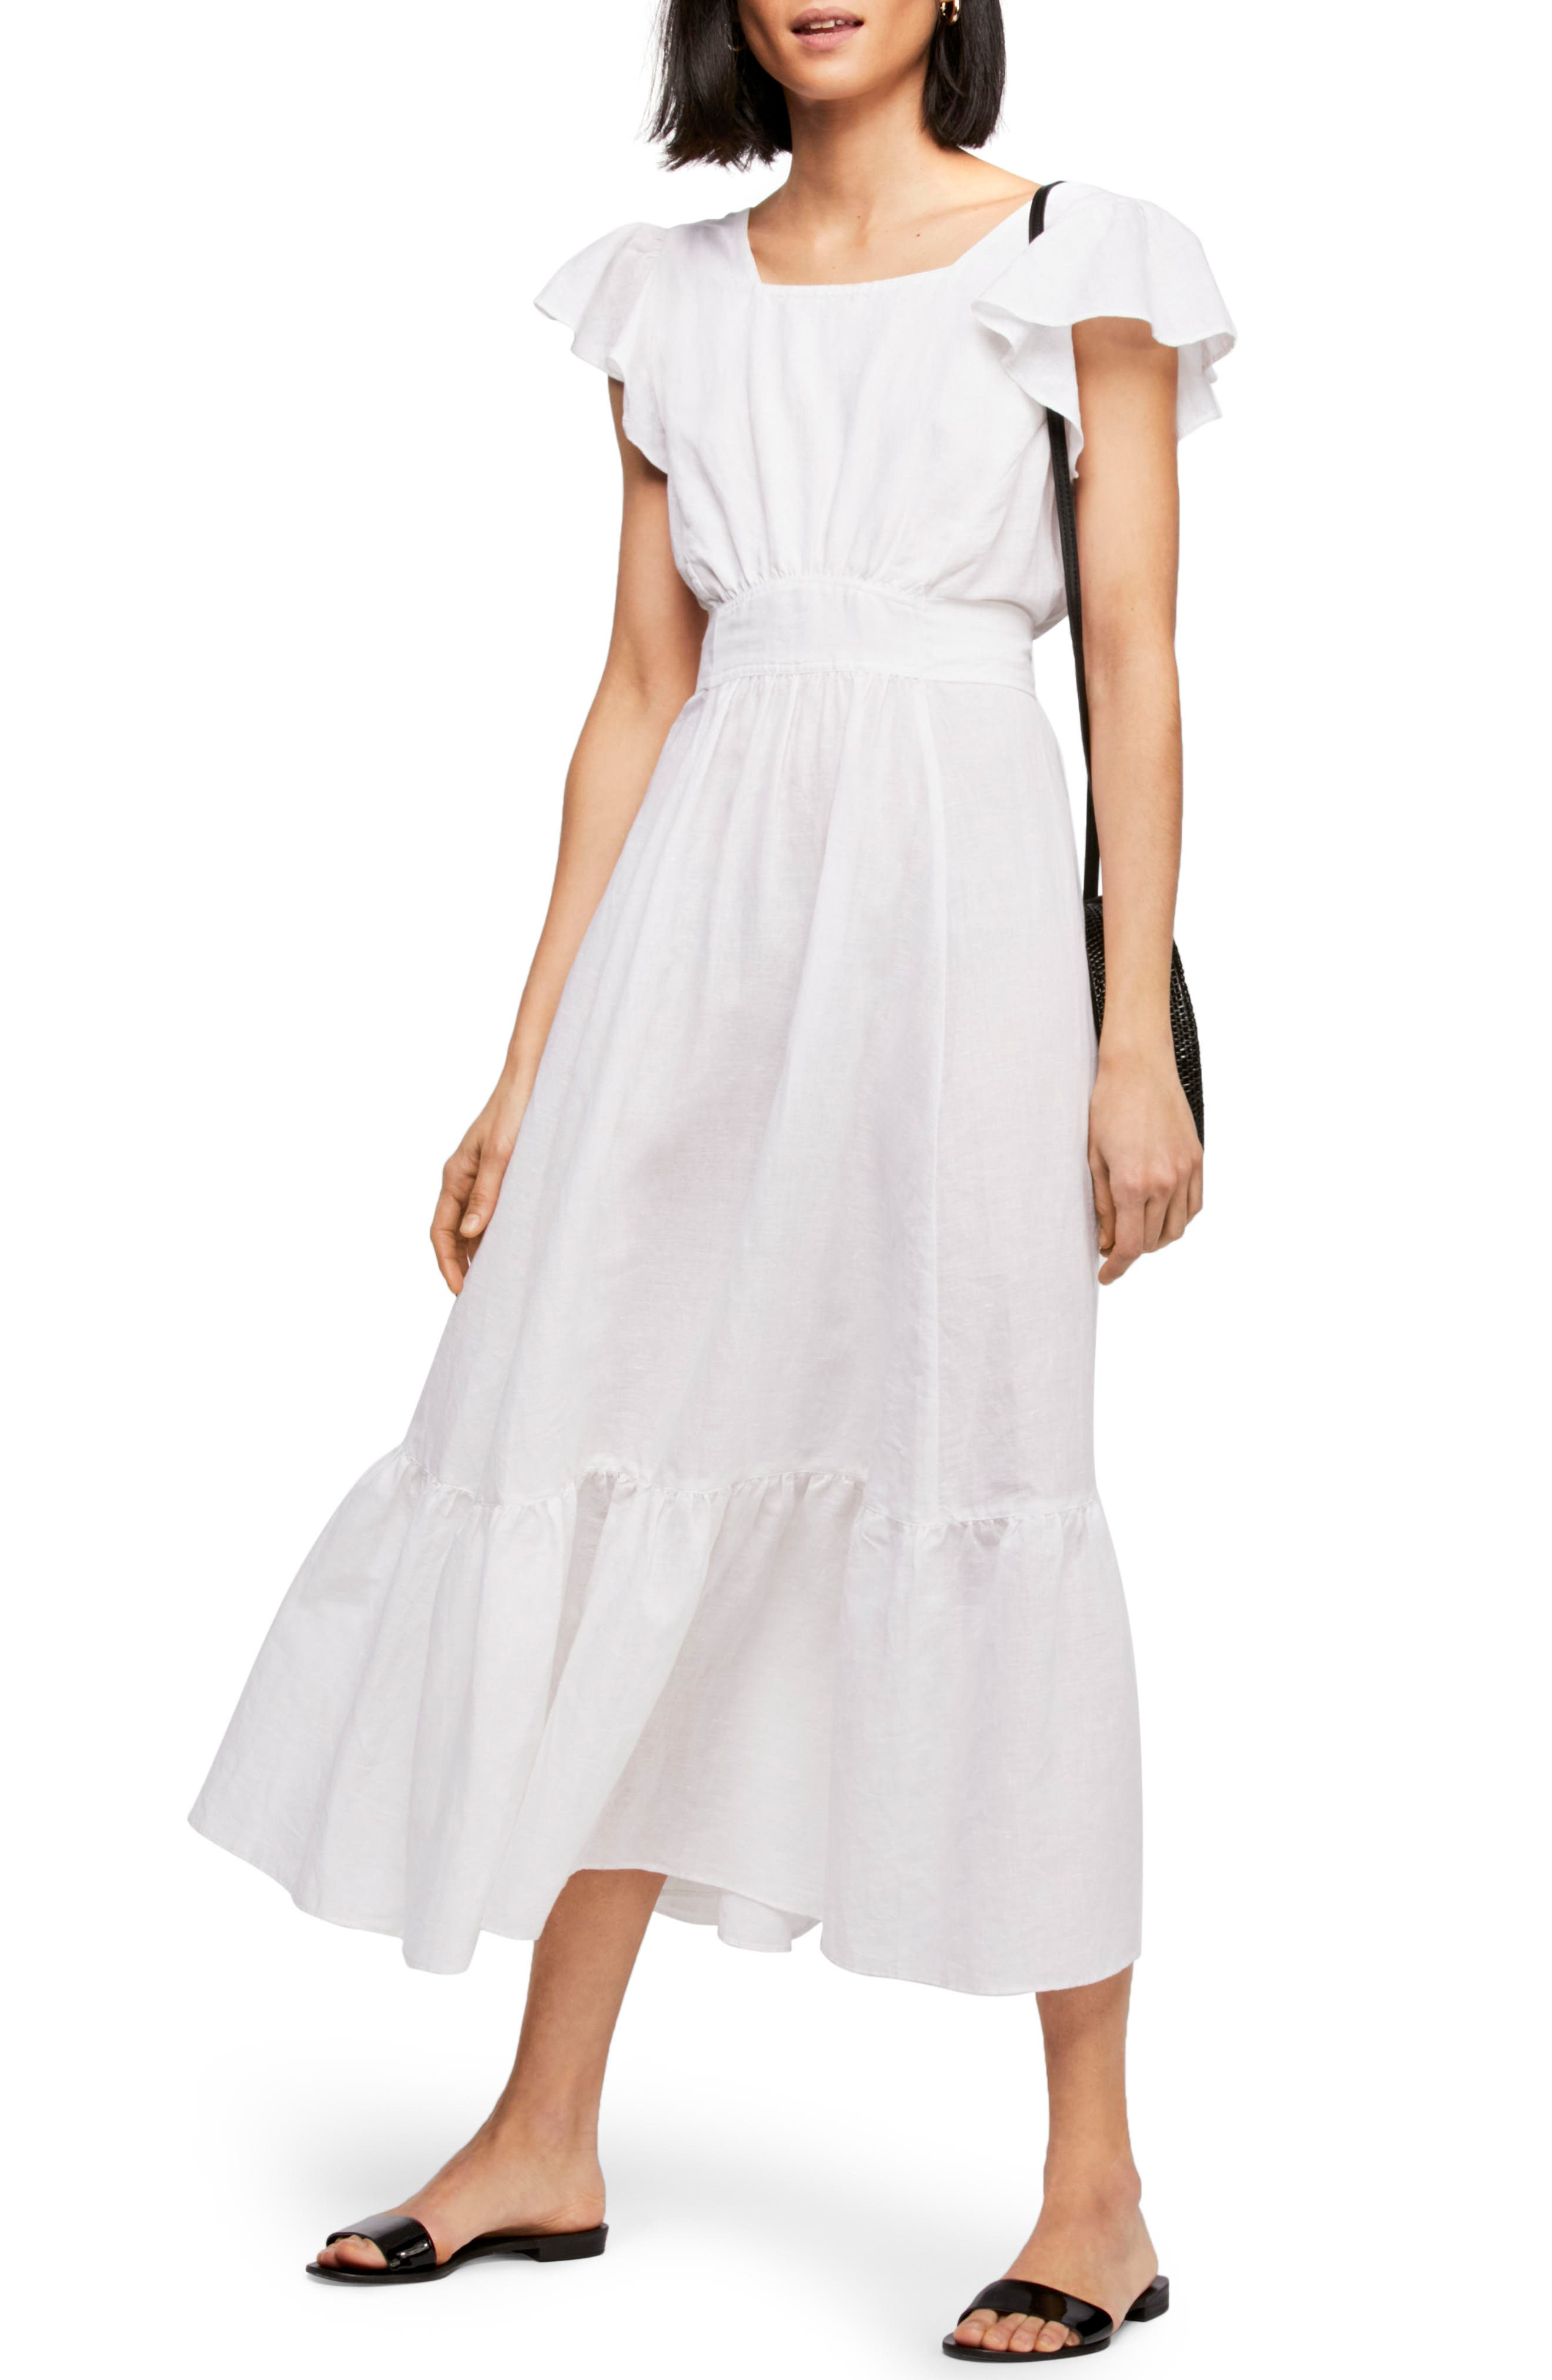 FREE PEOPLE Endless Summer by Free People Takin' a Chance Midi Dress, Main, color, 100